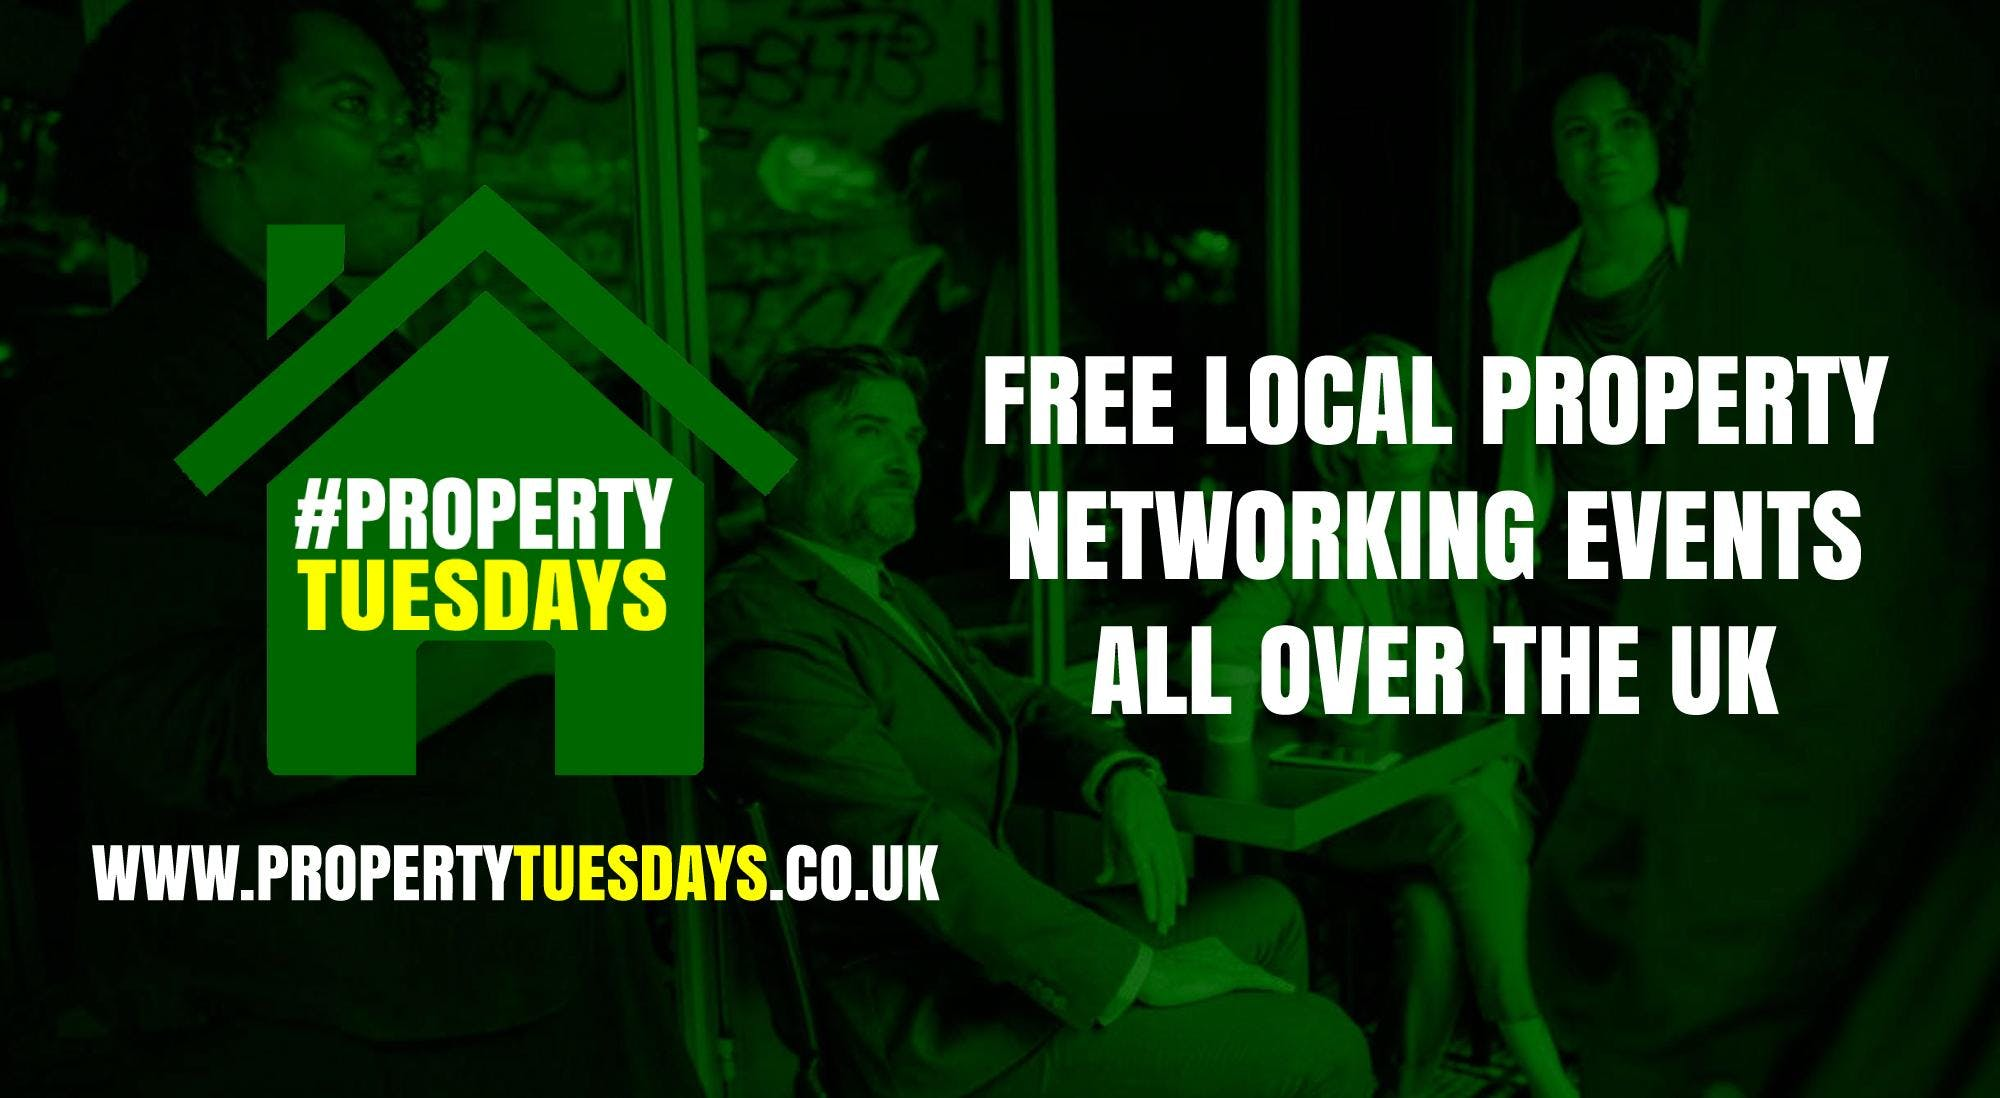 Property Tuesdays! Free property networking event in Leith